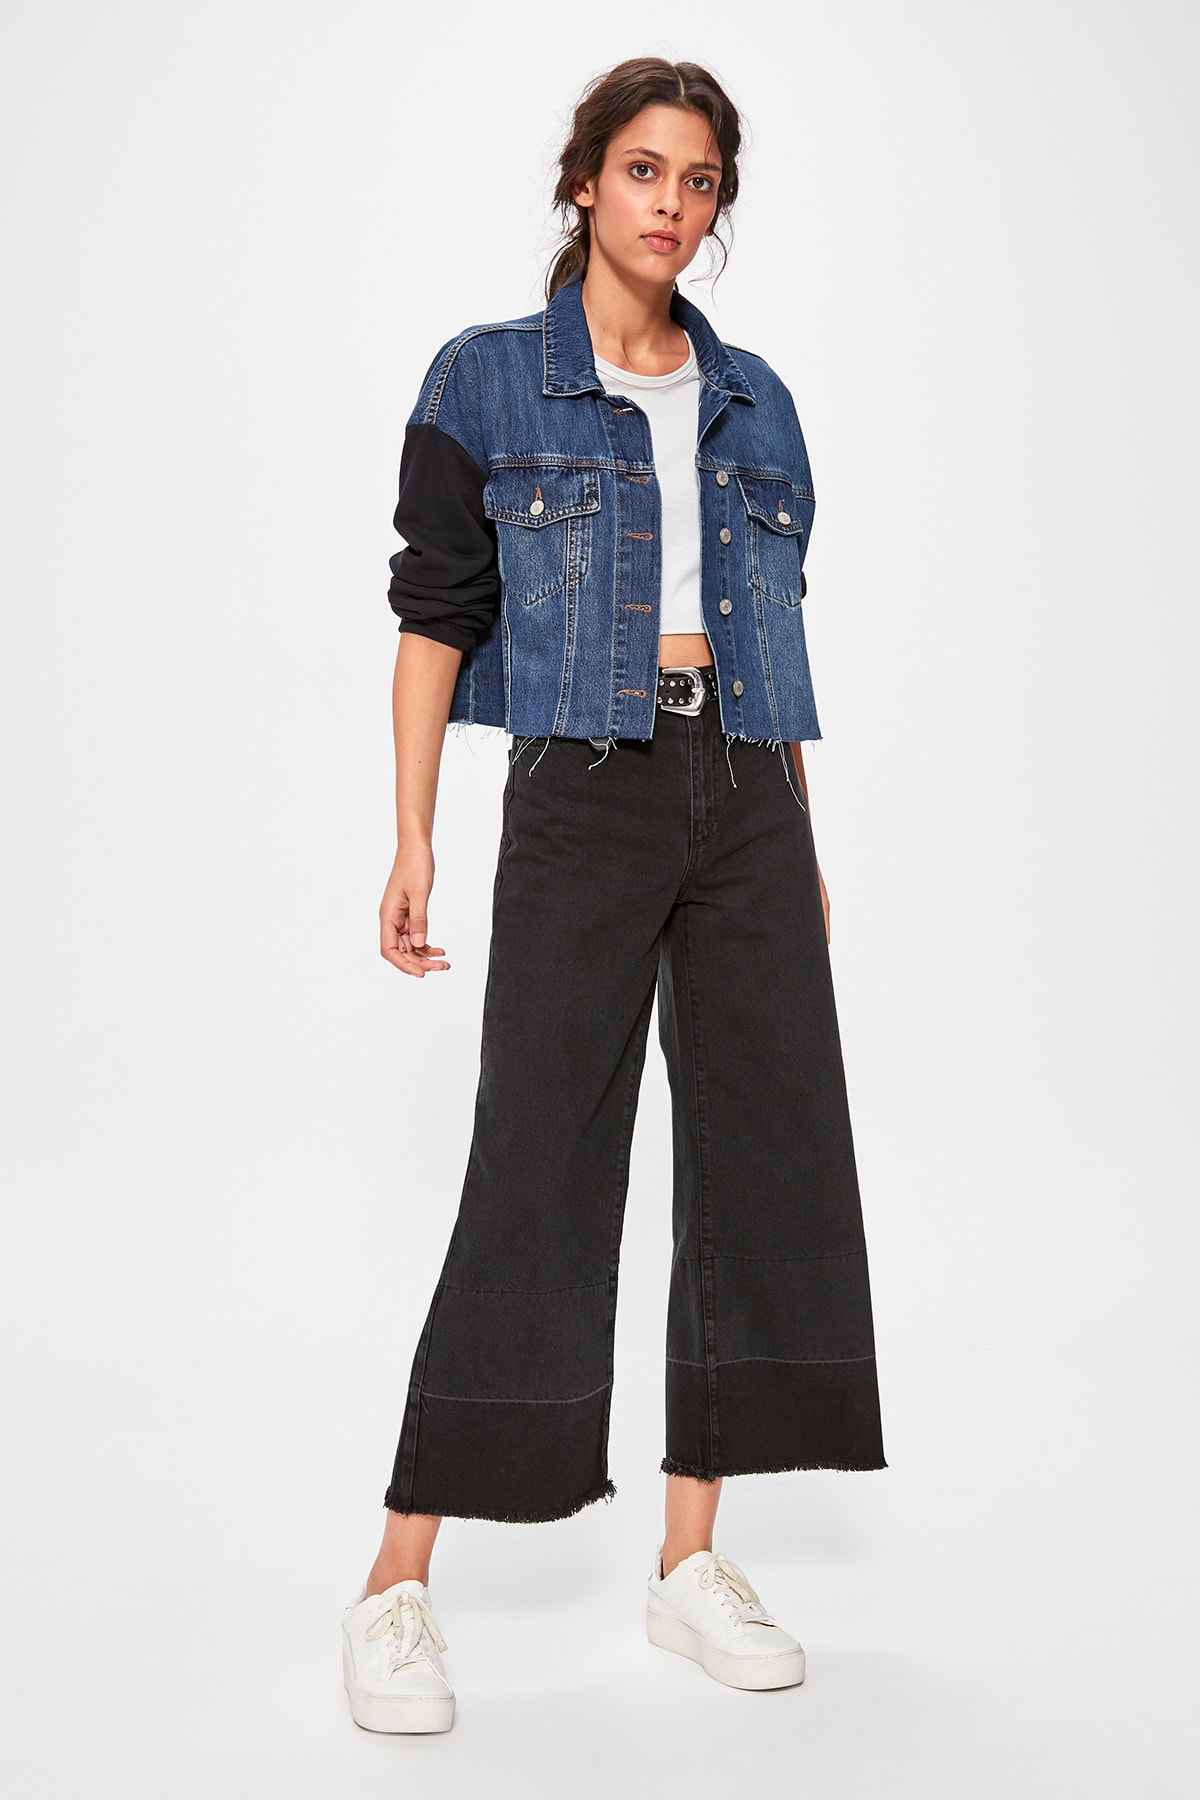 Trendyol Black Pettitoes With Color Block High Bel Wide Leg Jeans TWOAW20JE0201